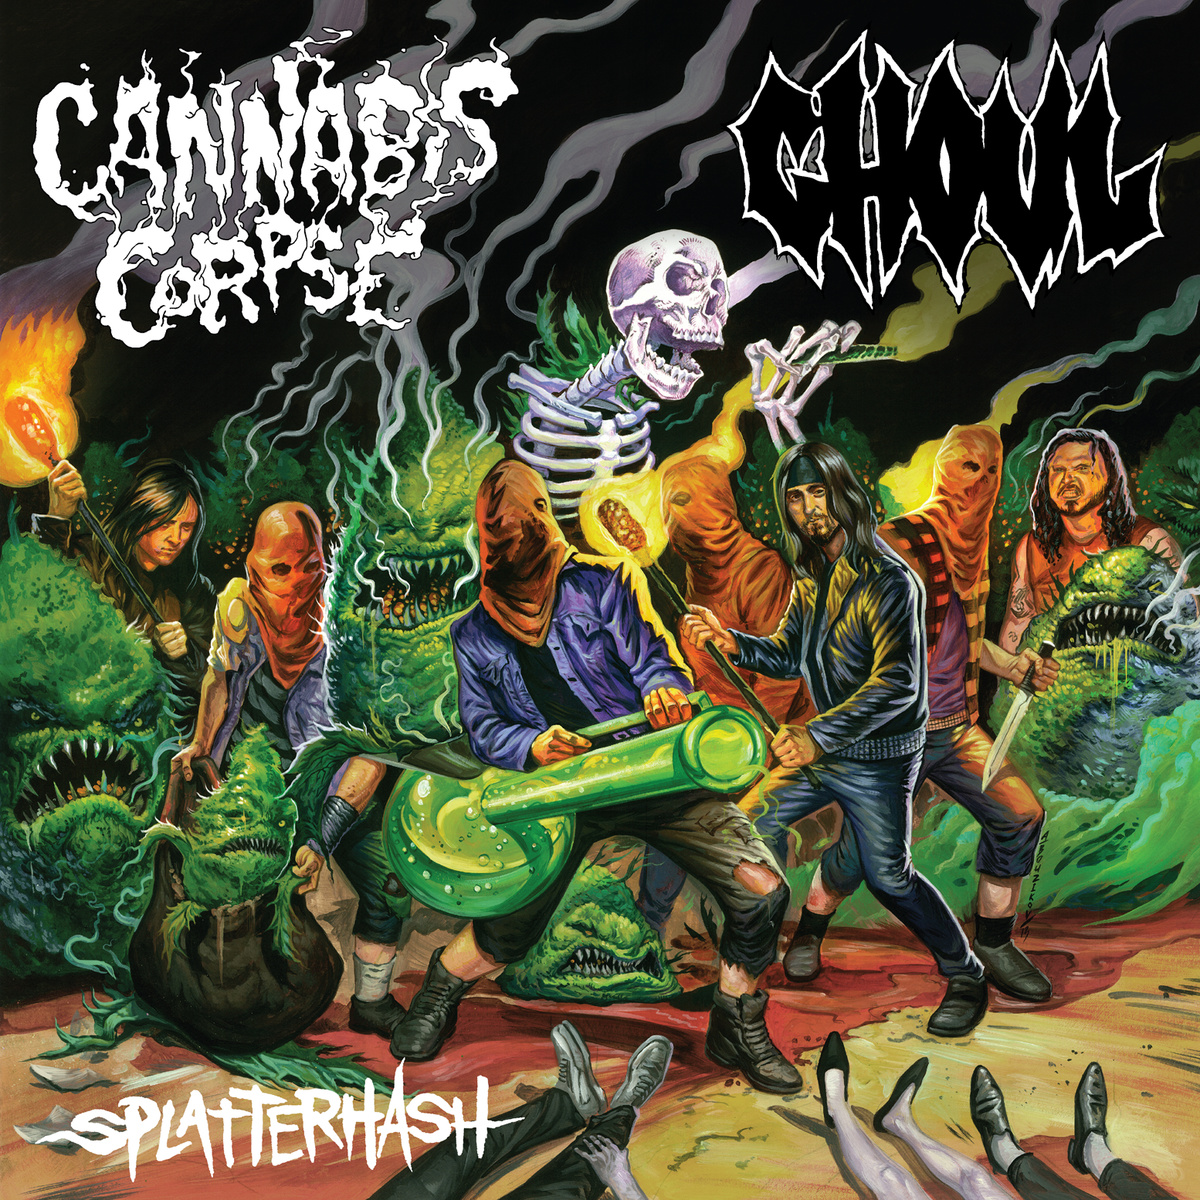 Cannibas_Ghoul - Splatterhash